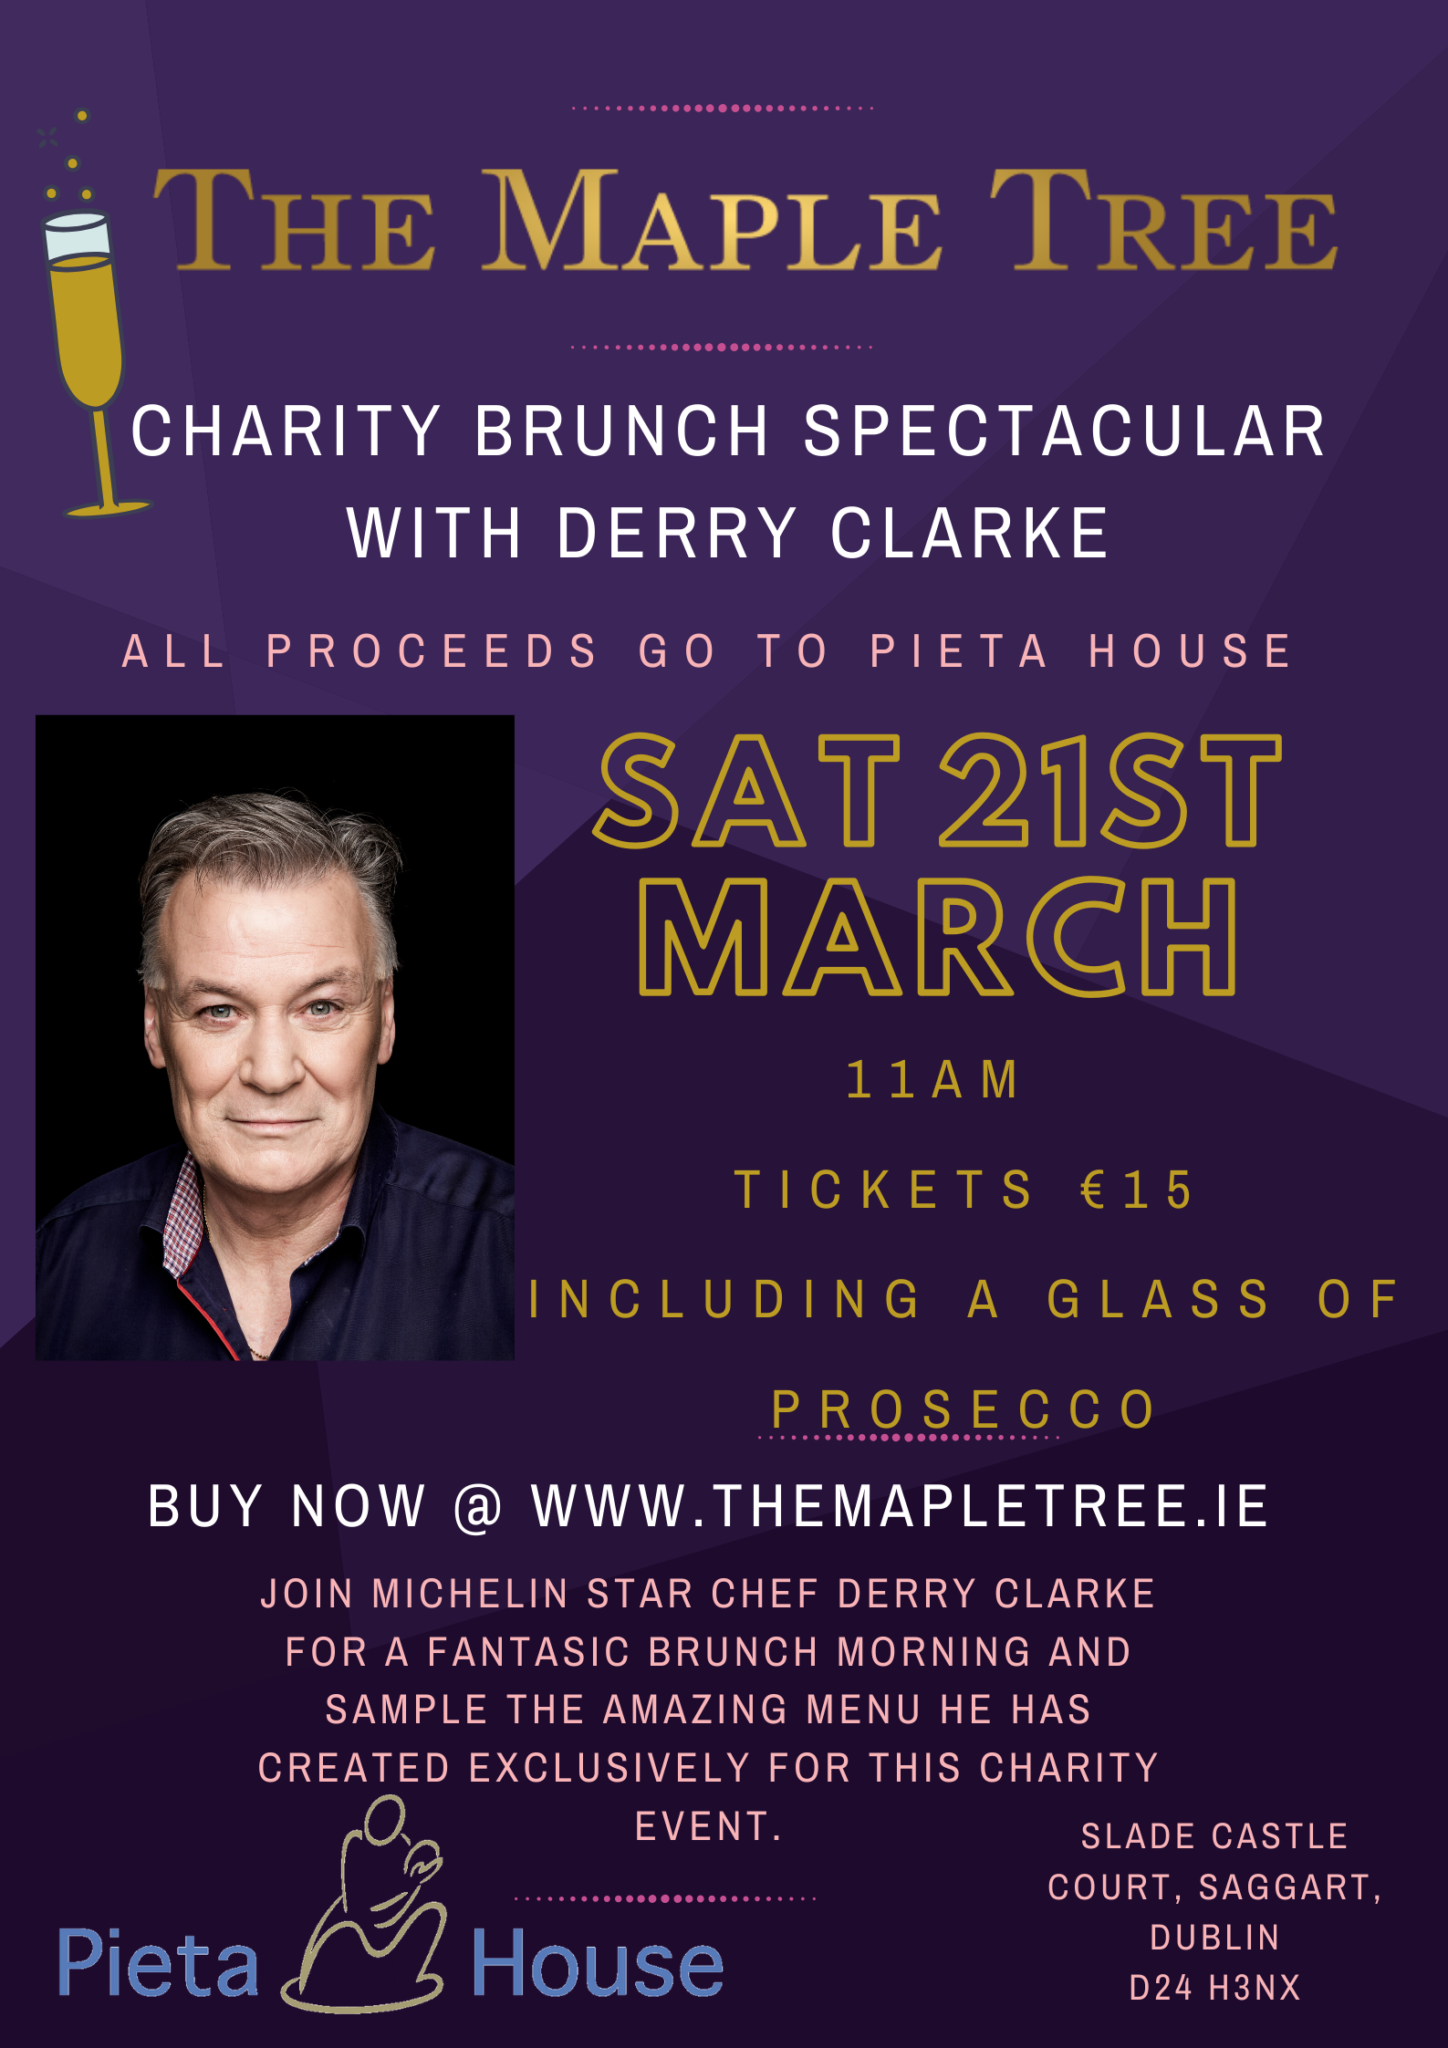 The Maple Tree fundraiser in aid of Pieta House